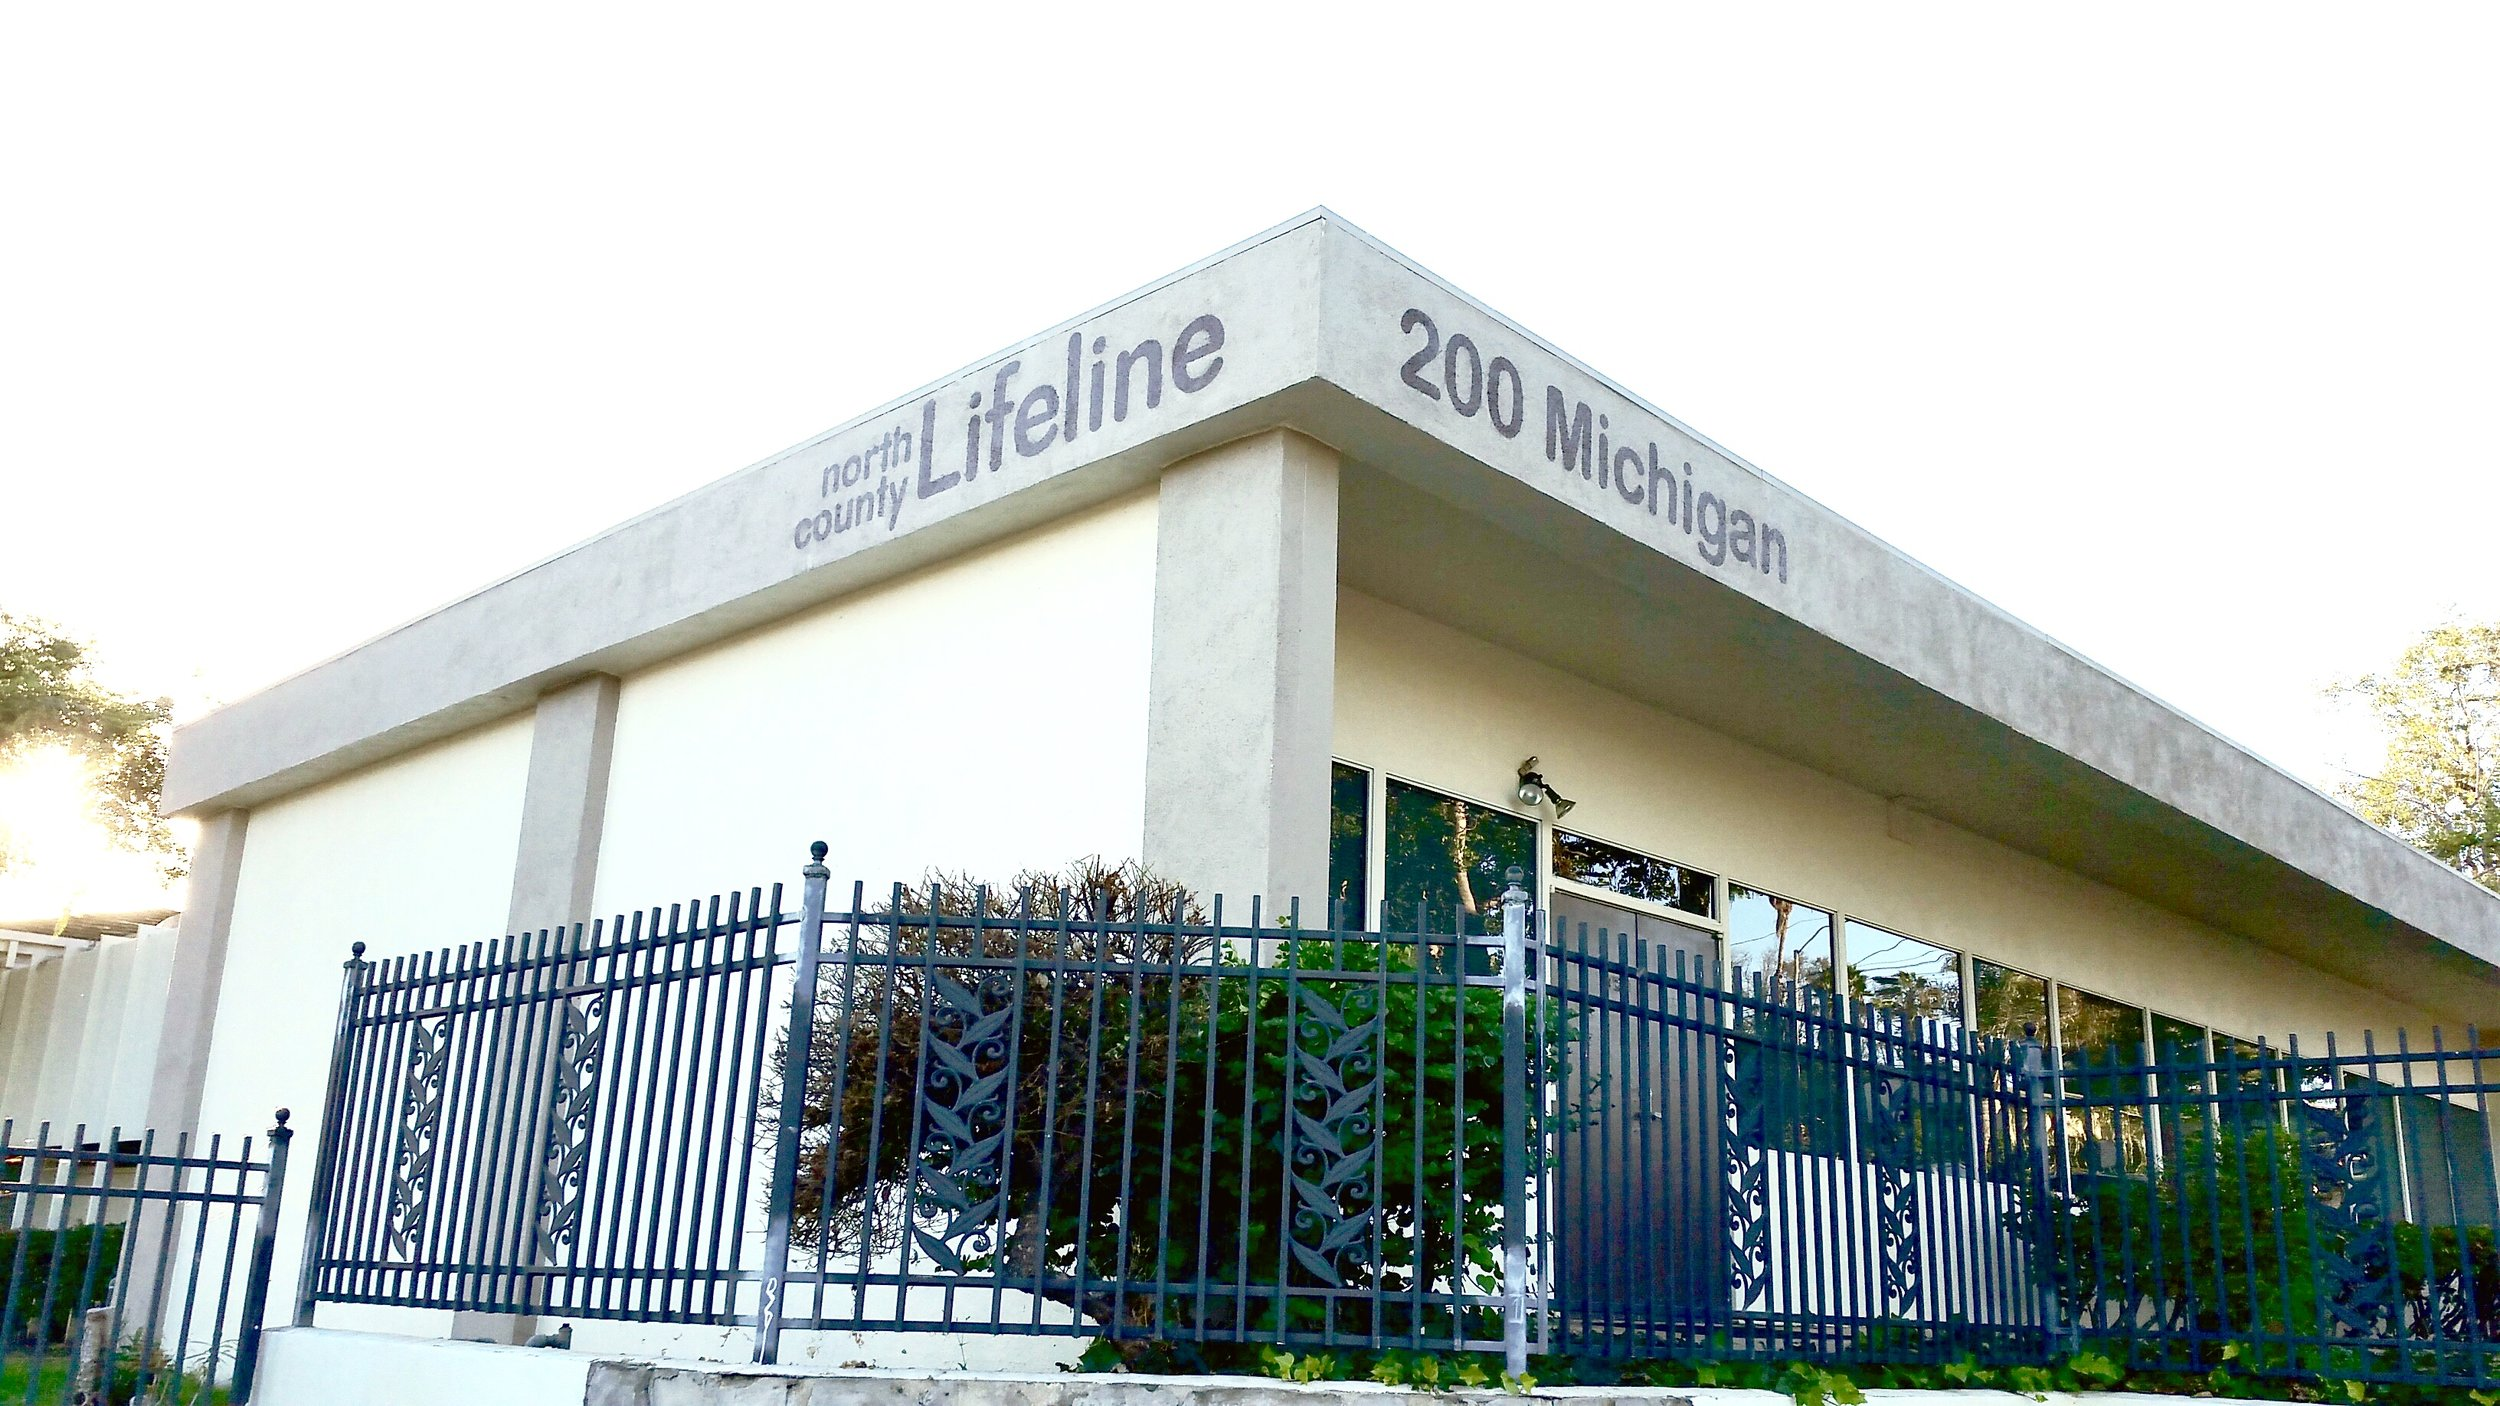 North County Lifeline painted sign mural